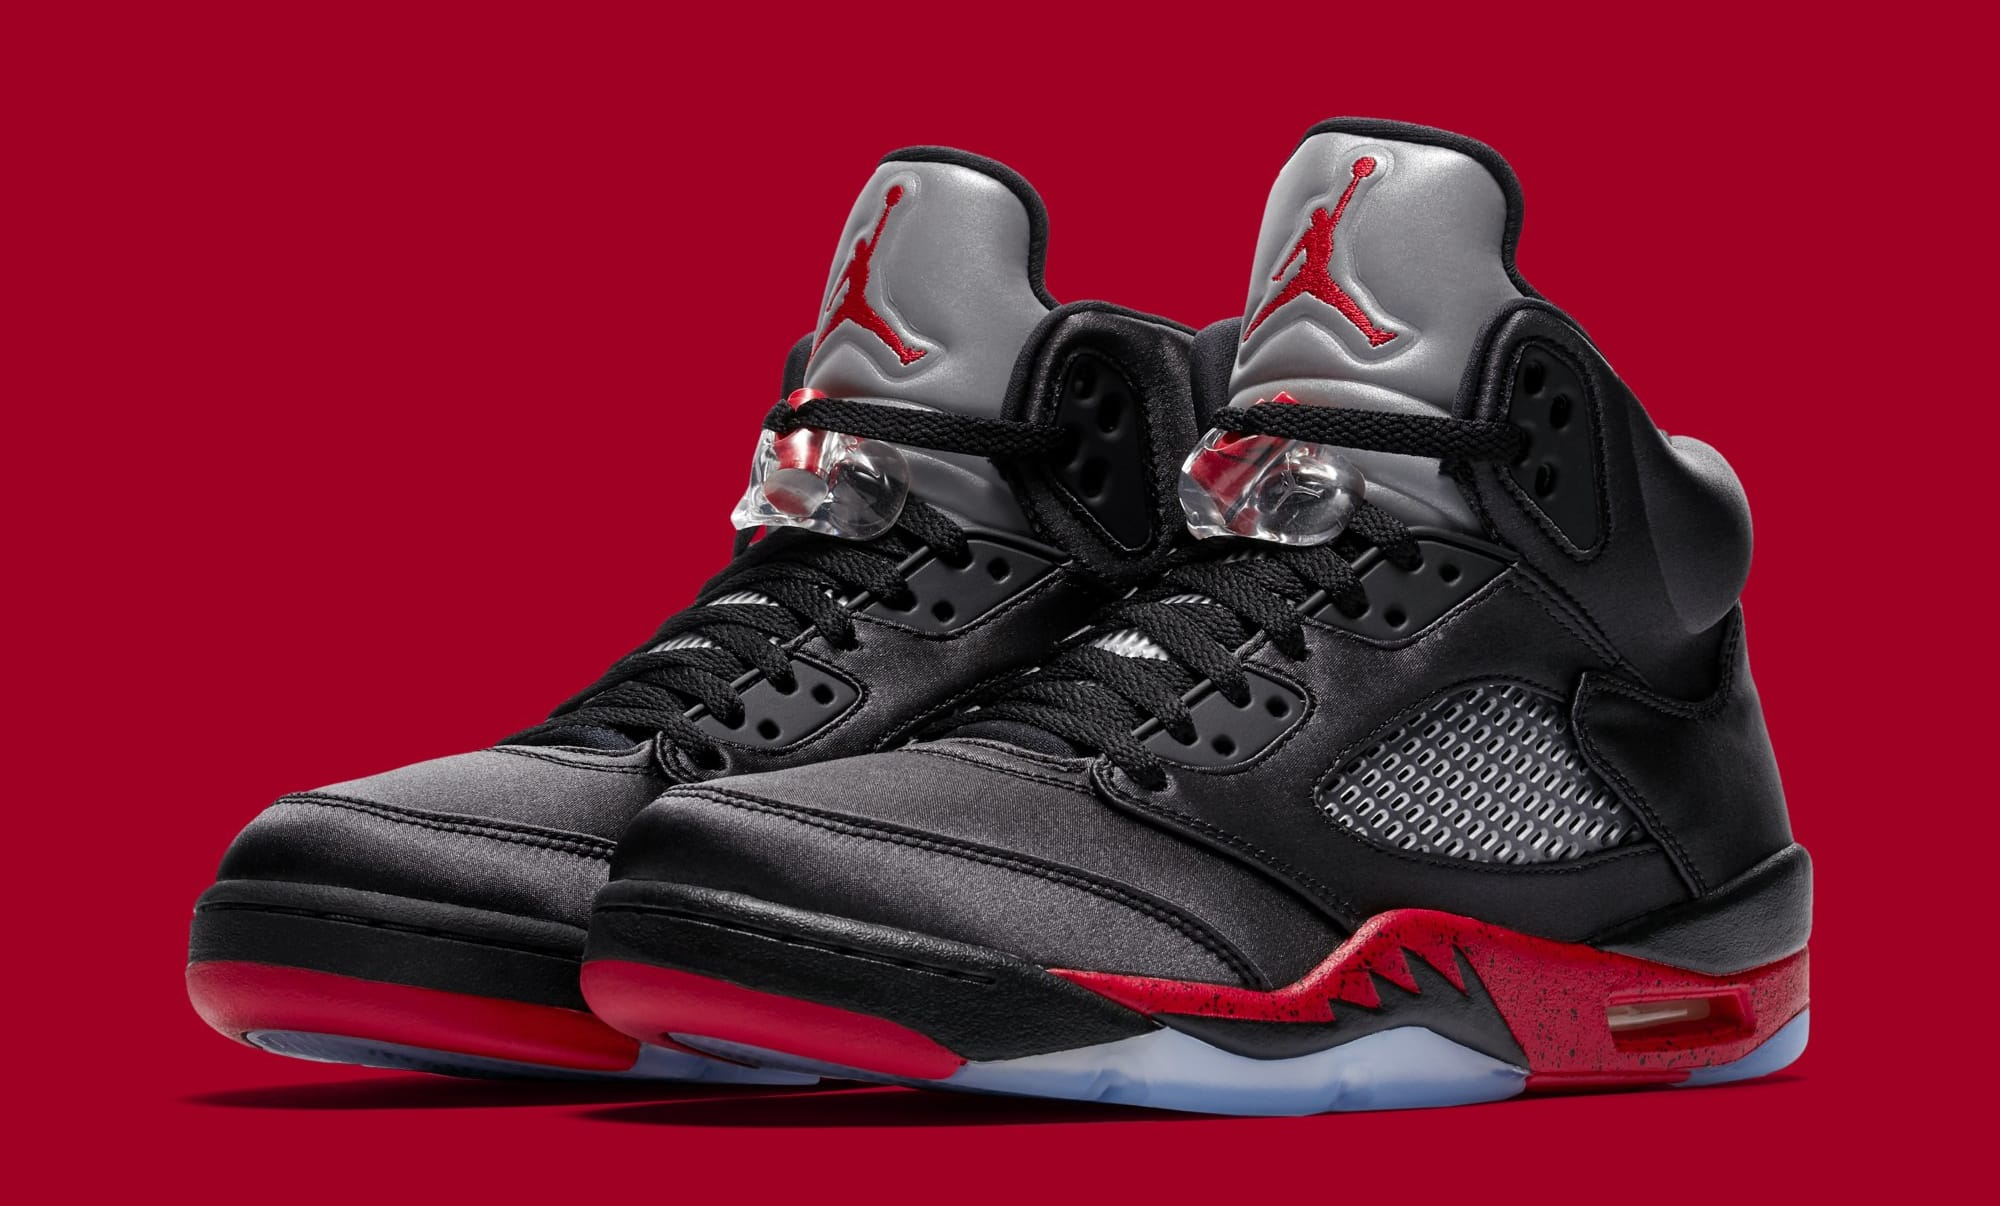 0e946ec838d air jordan 5 Archives - Air 23 - Air Jordan Release Dates ...